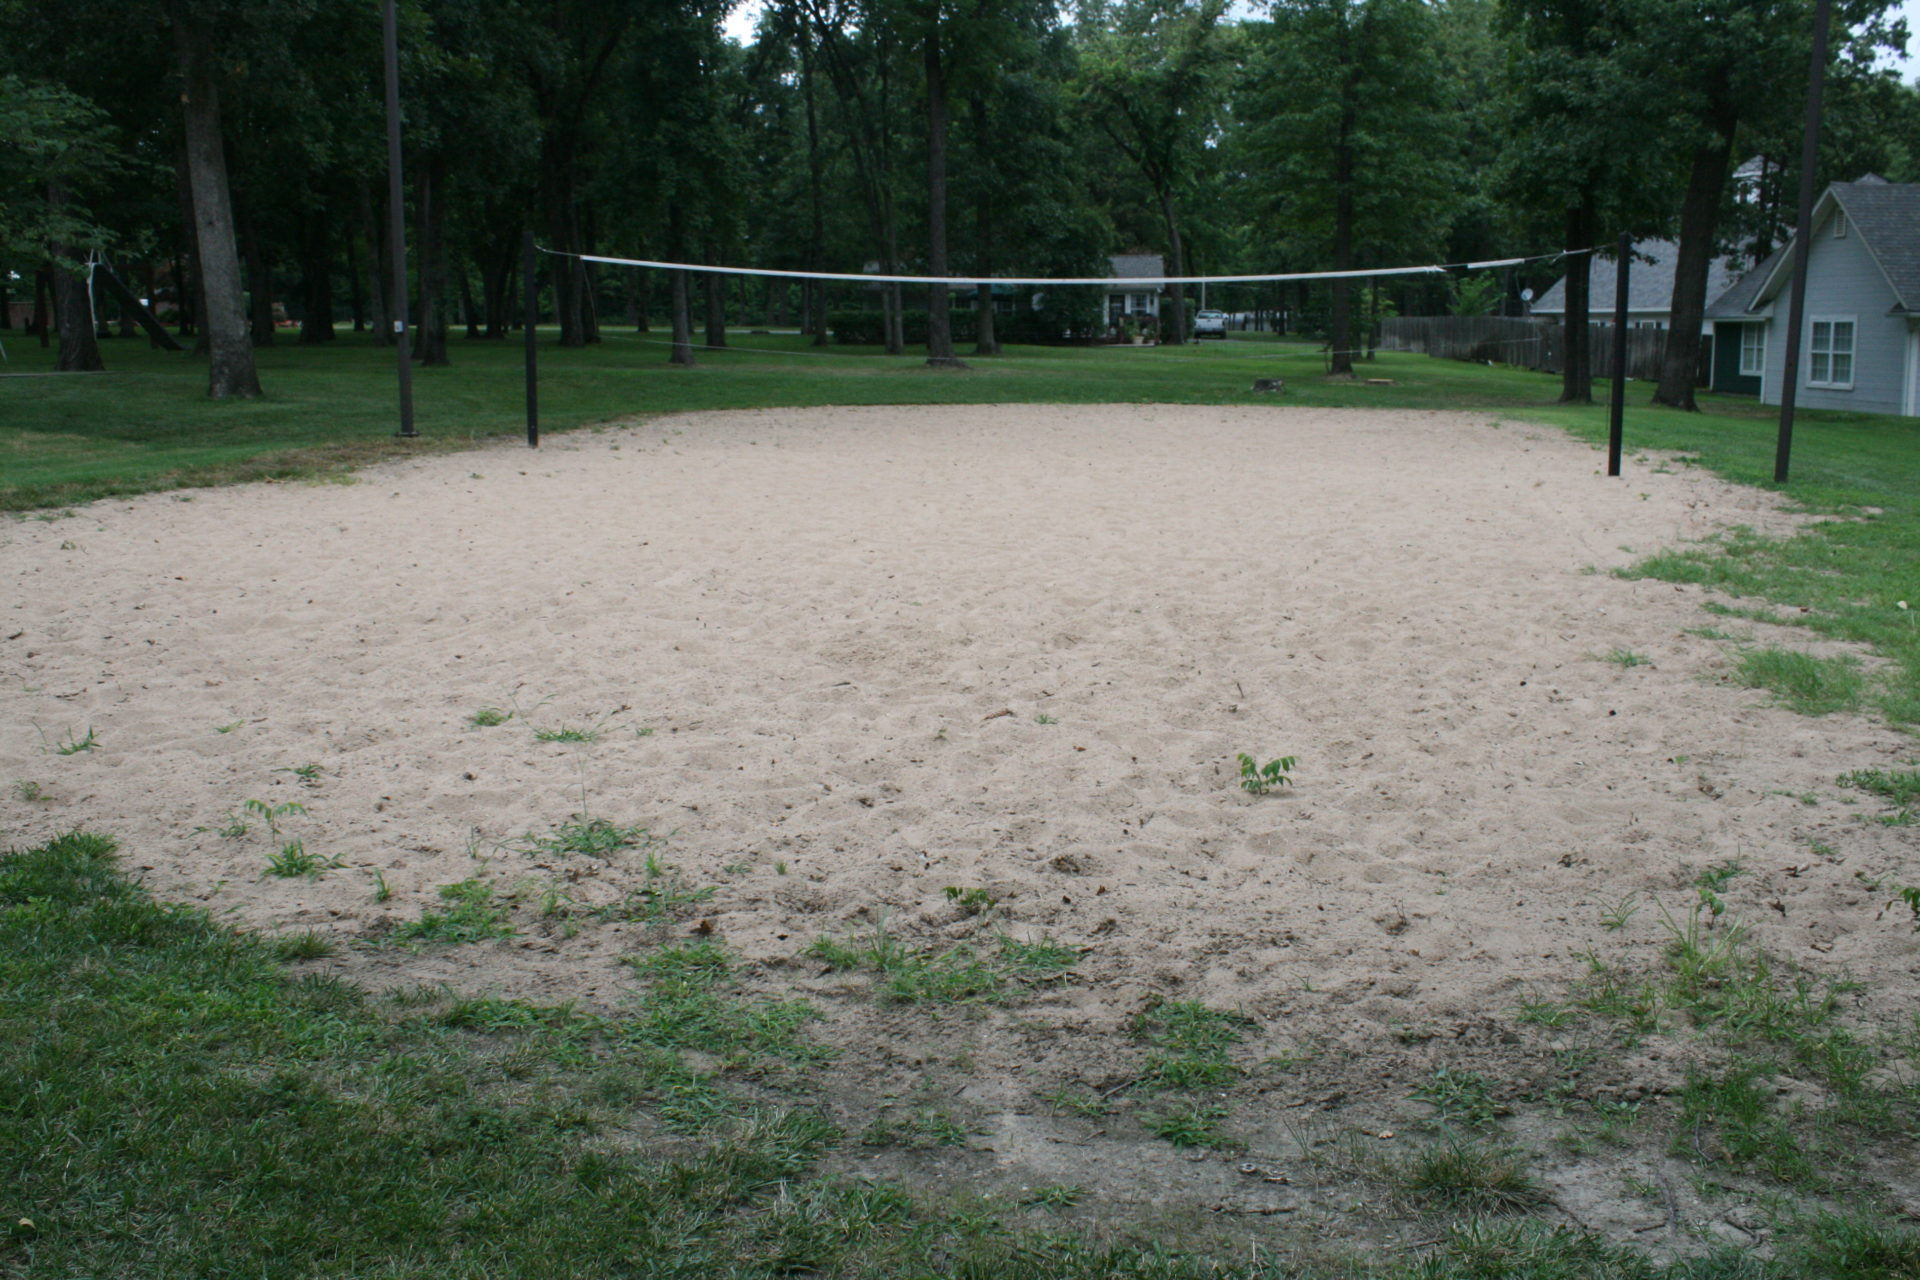 Backyard Sand Volleyball Court : Backyard Sand Volleyball Court Dimensions By this volleyball court